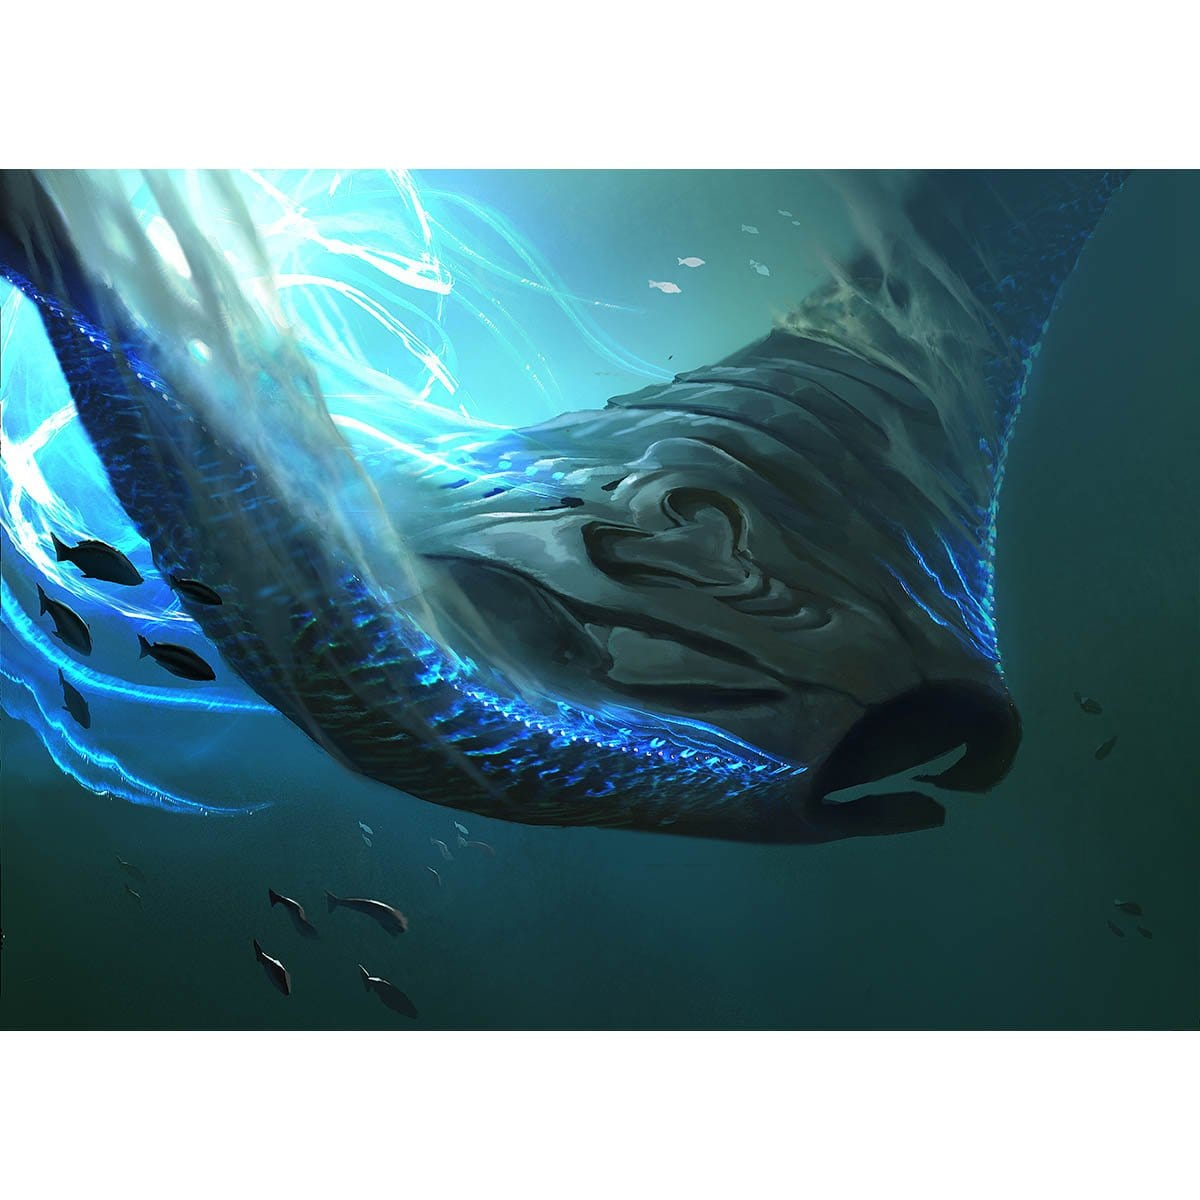 Deepglow Skate Print - Print - Original Magic Art - Accessories for Magic the Gathering and other card games